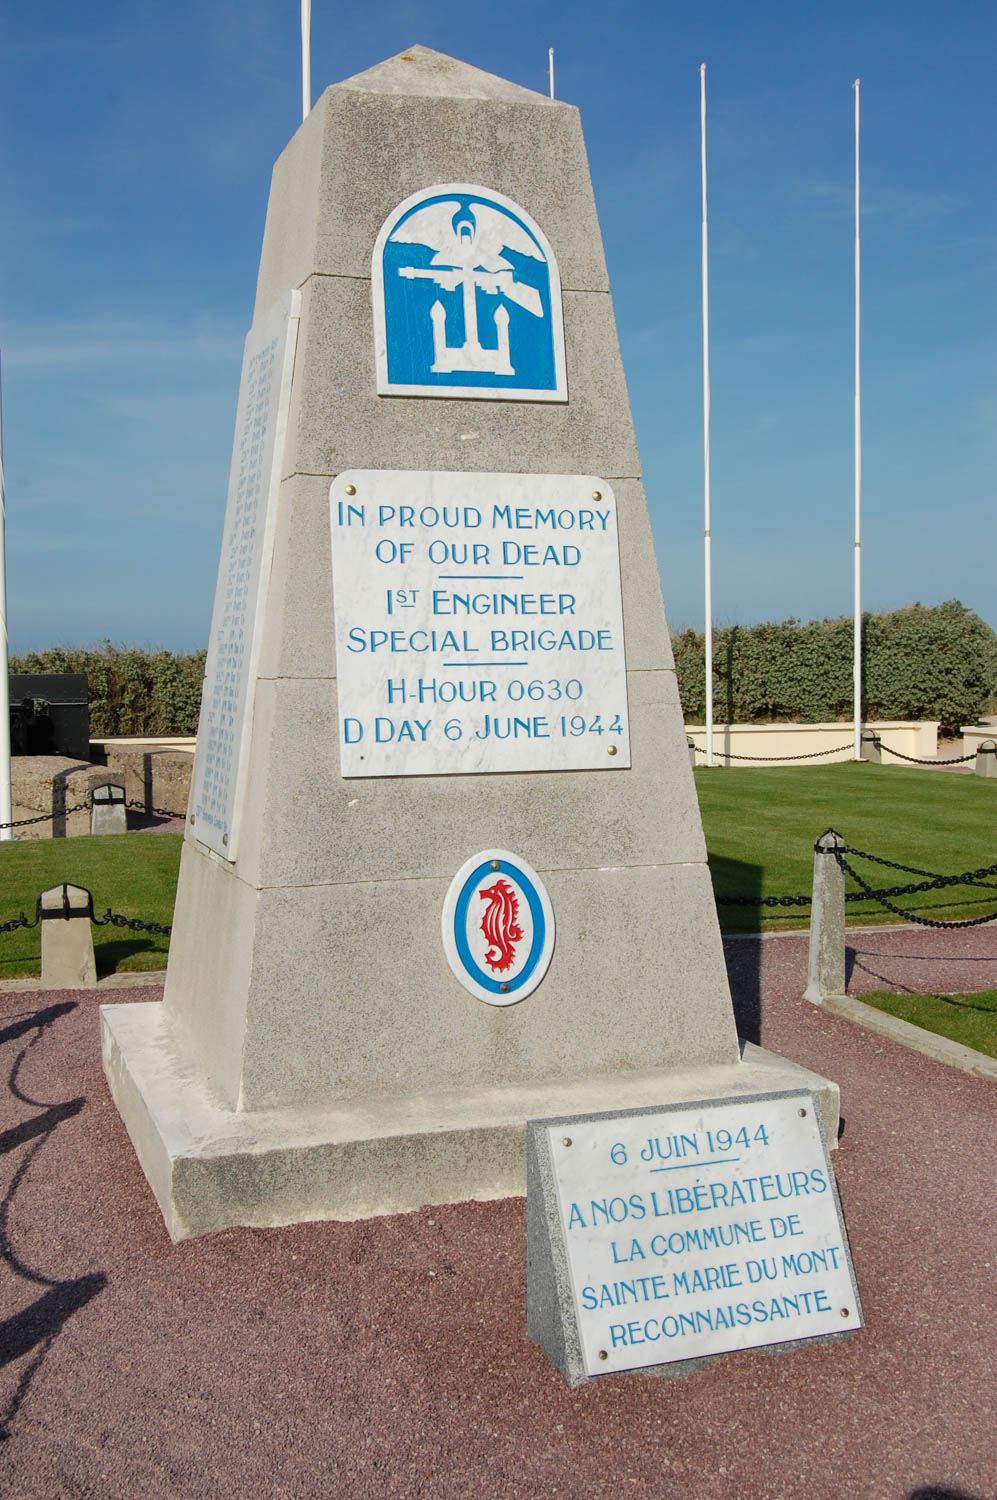 One of the monuments commemorating the landing at Utah Beach in Normandy on D-Day.